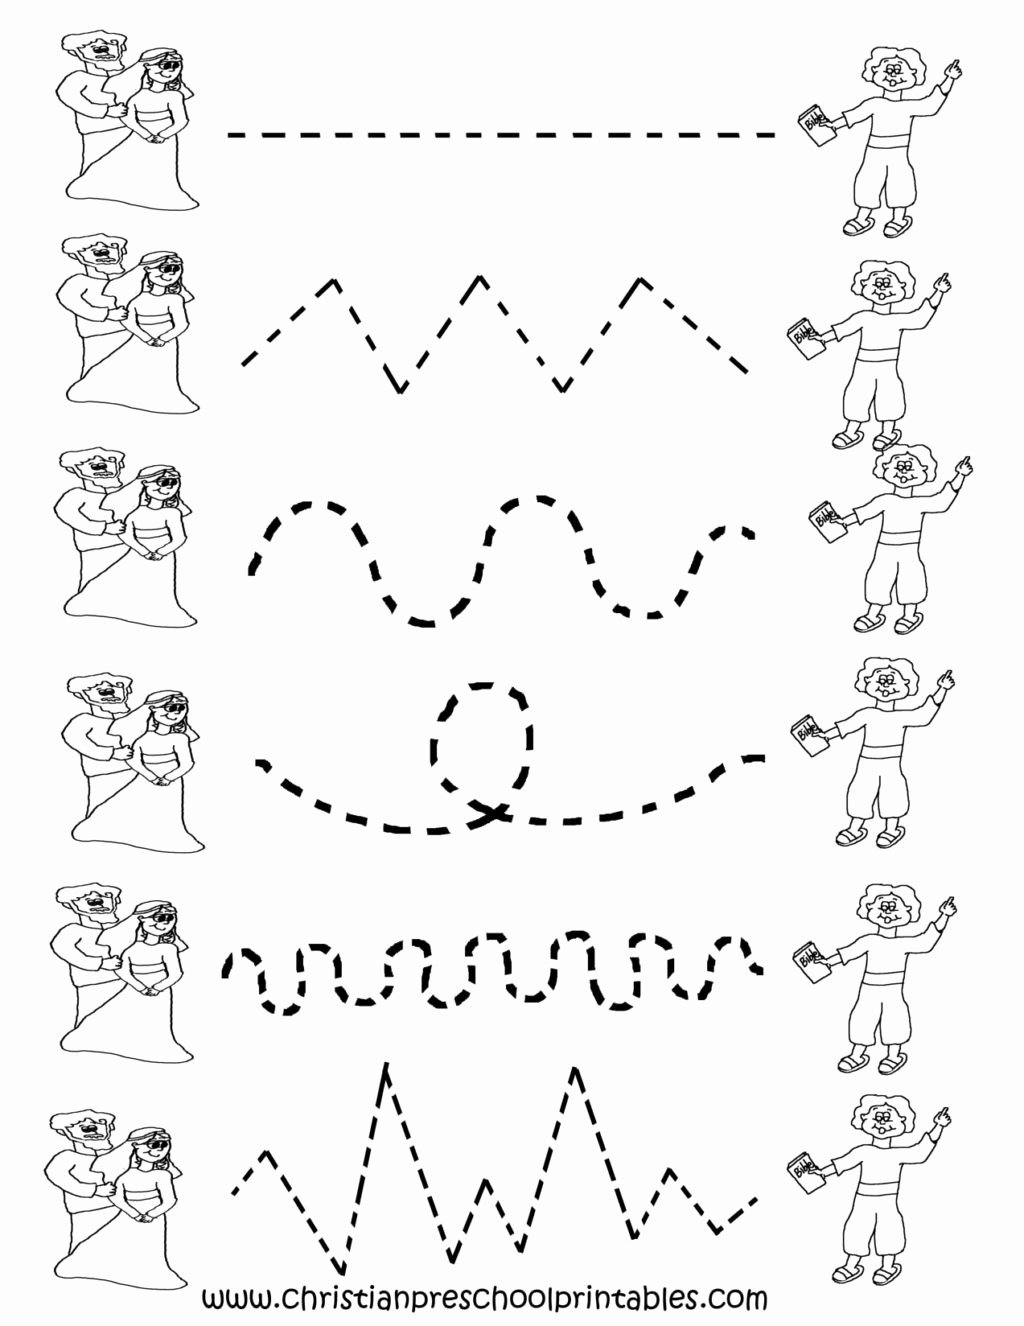 Free Printable Tracing Worksheets for Preschoolers Lovely Worksheet Preschool Tracing Worksheets Cakepins